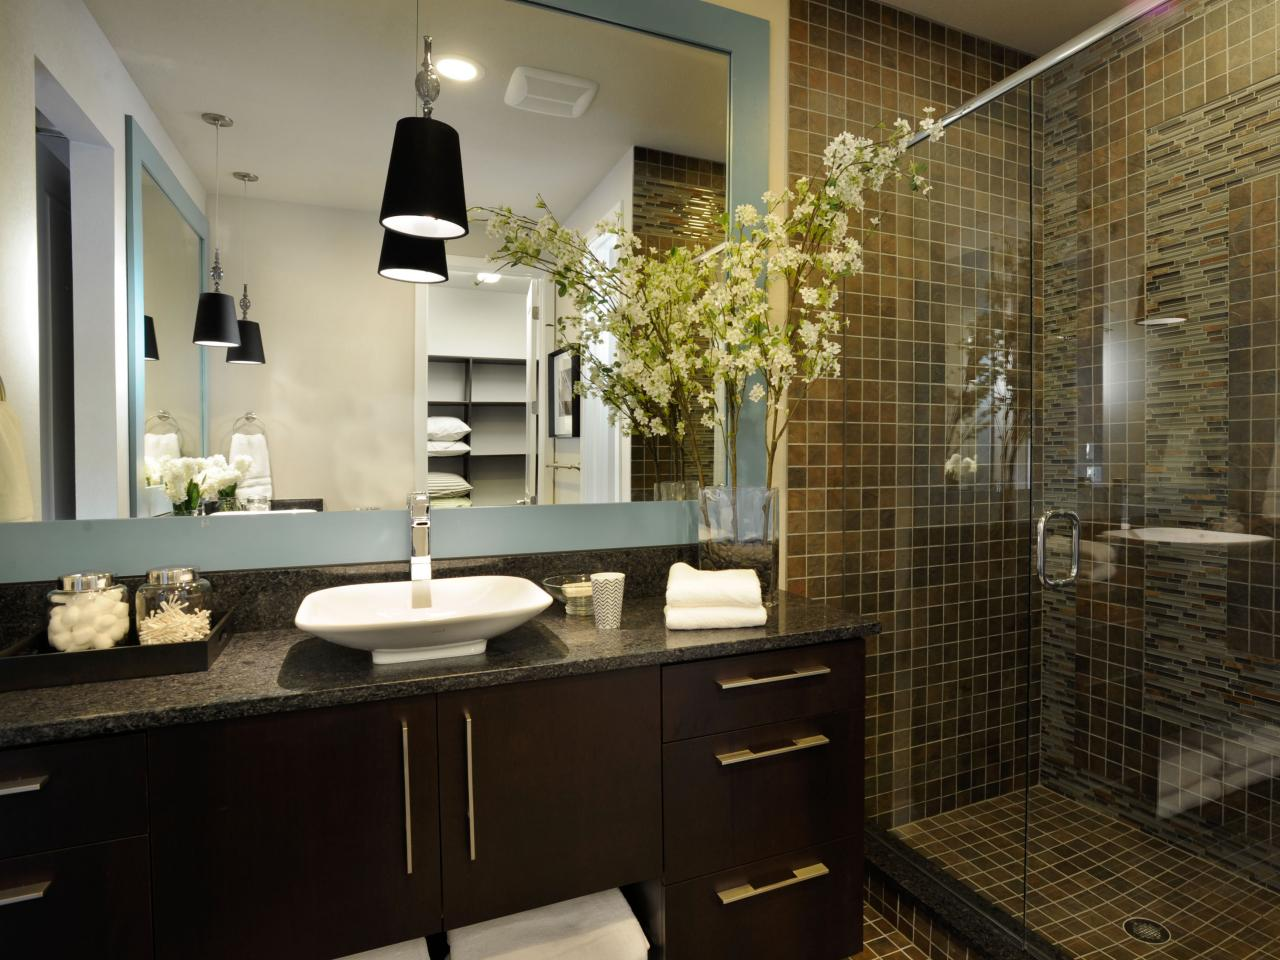 Small bathroom decorating ideas bathroom ideas designs for Restroom design ideas